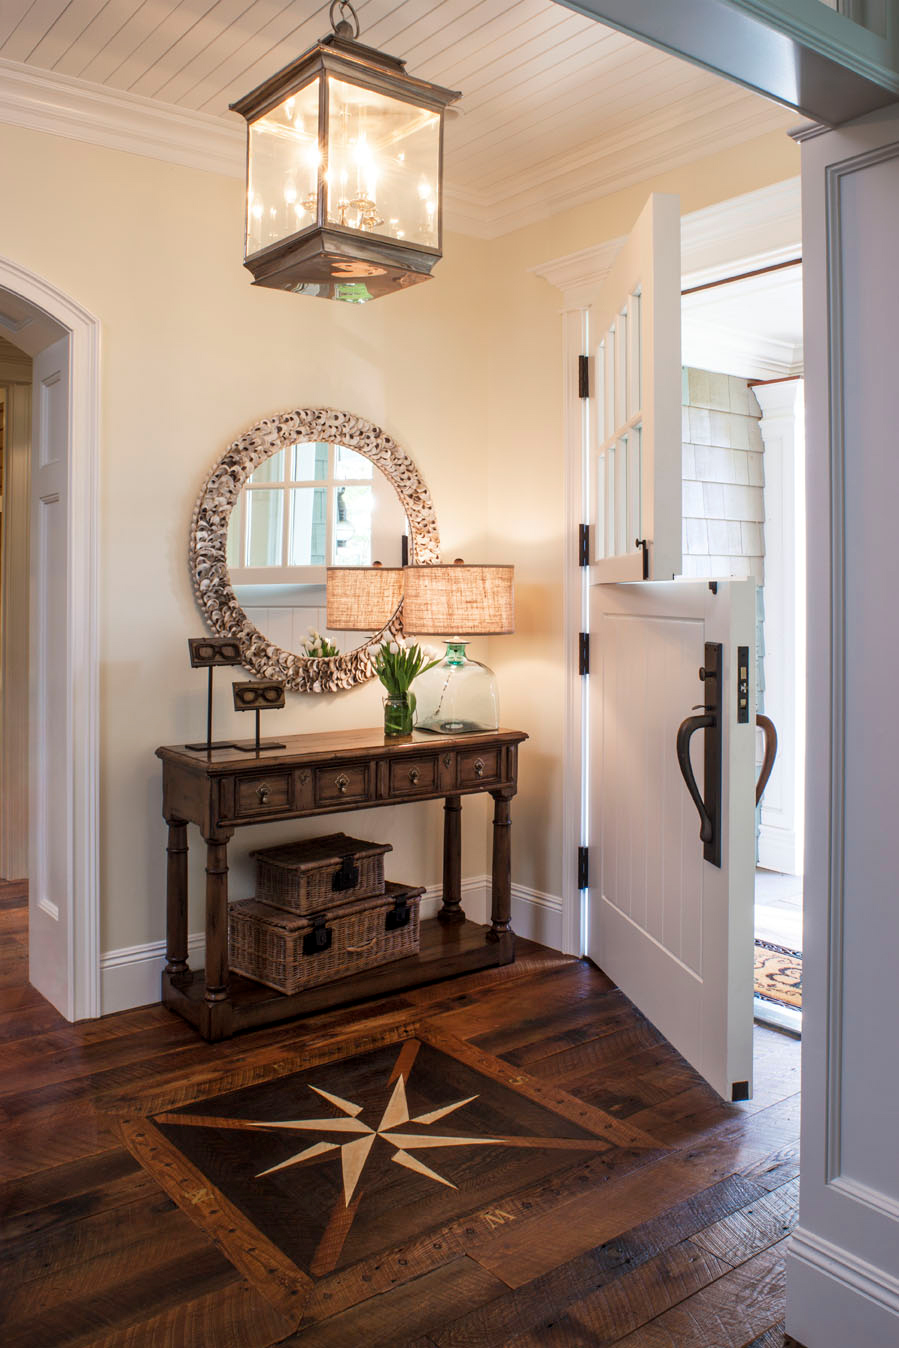 Foyer And Entry : Best rustic entryway decorating ideas and designs for